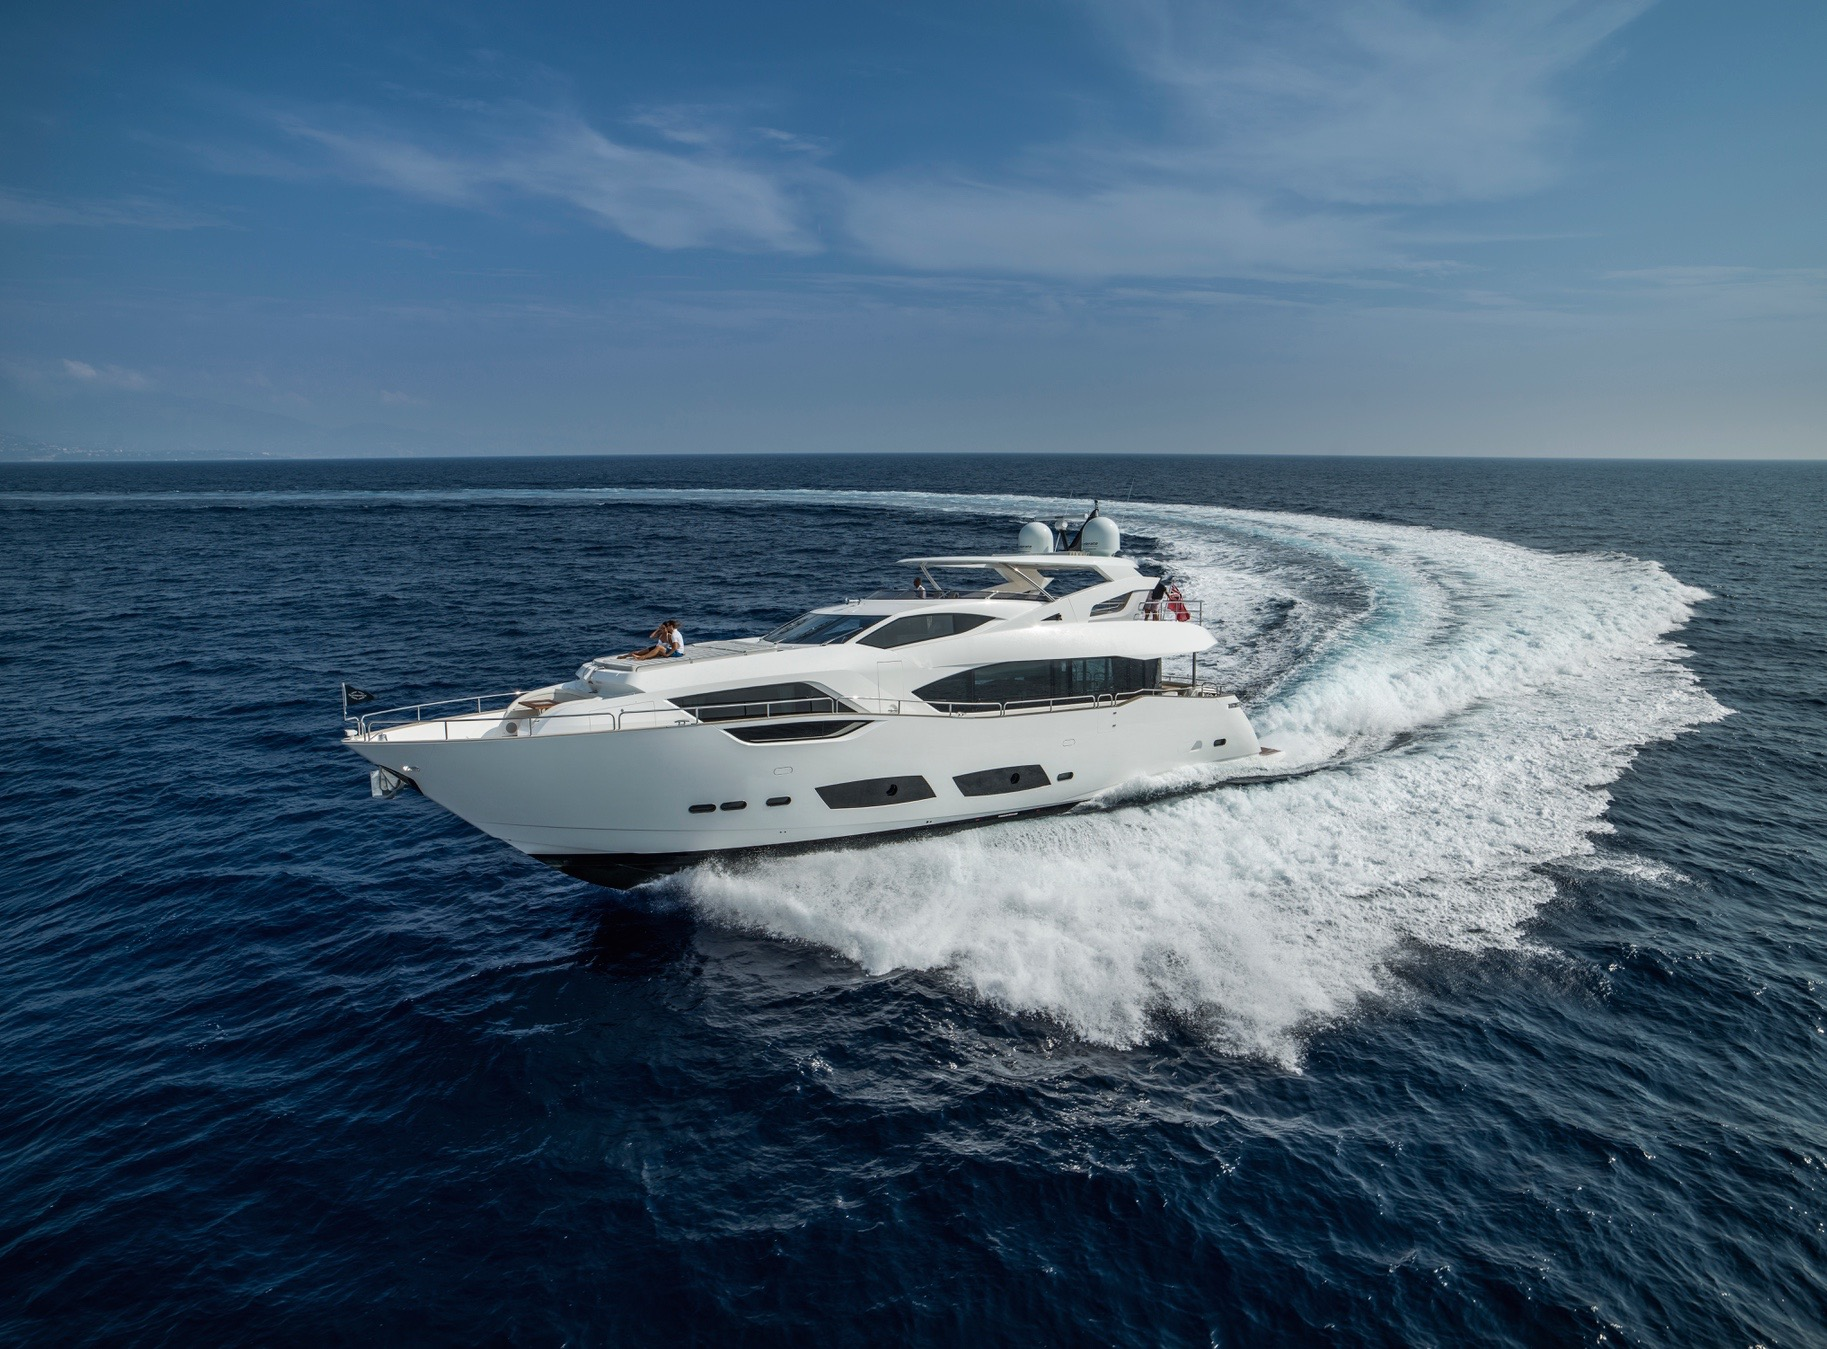 SUNSEEKER INTERNATIONAL ANNOUNCES PARTNERSHIP WITH THE BLUE MARINE FOUNDATION